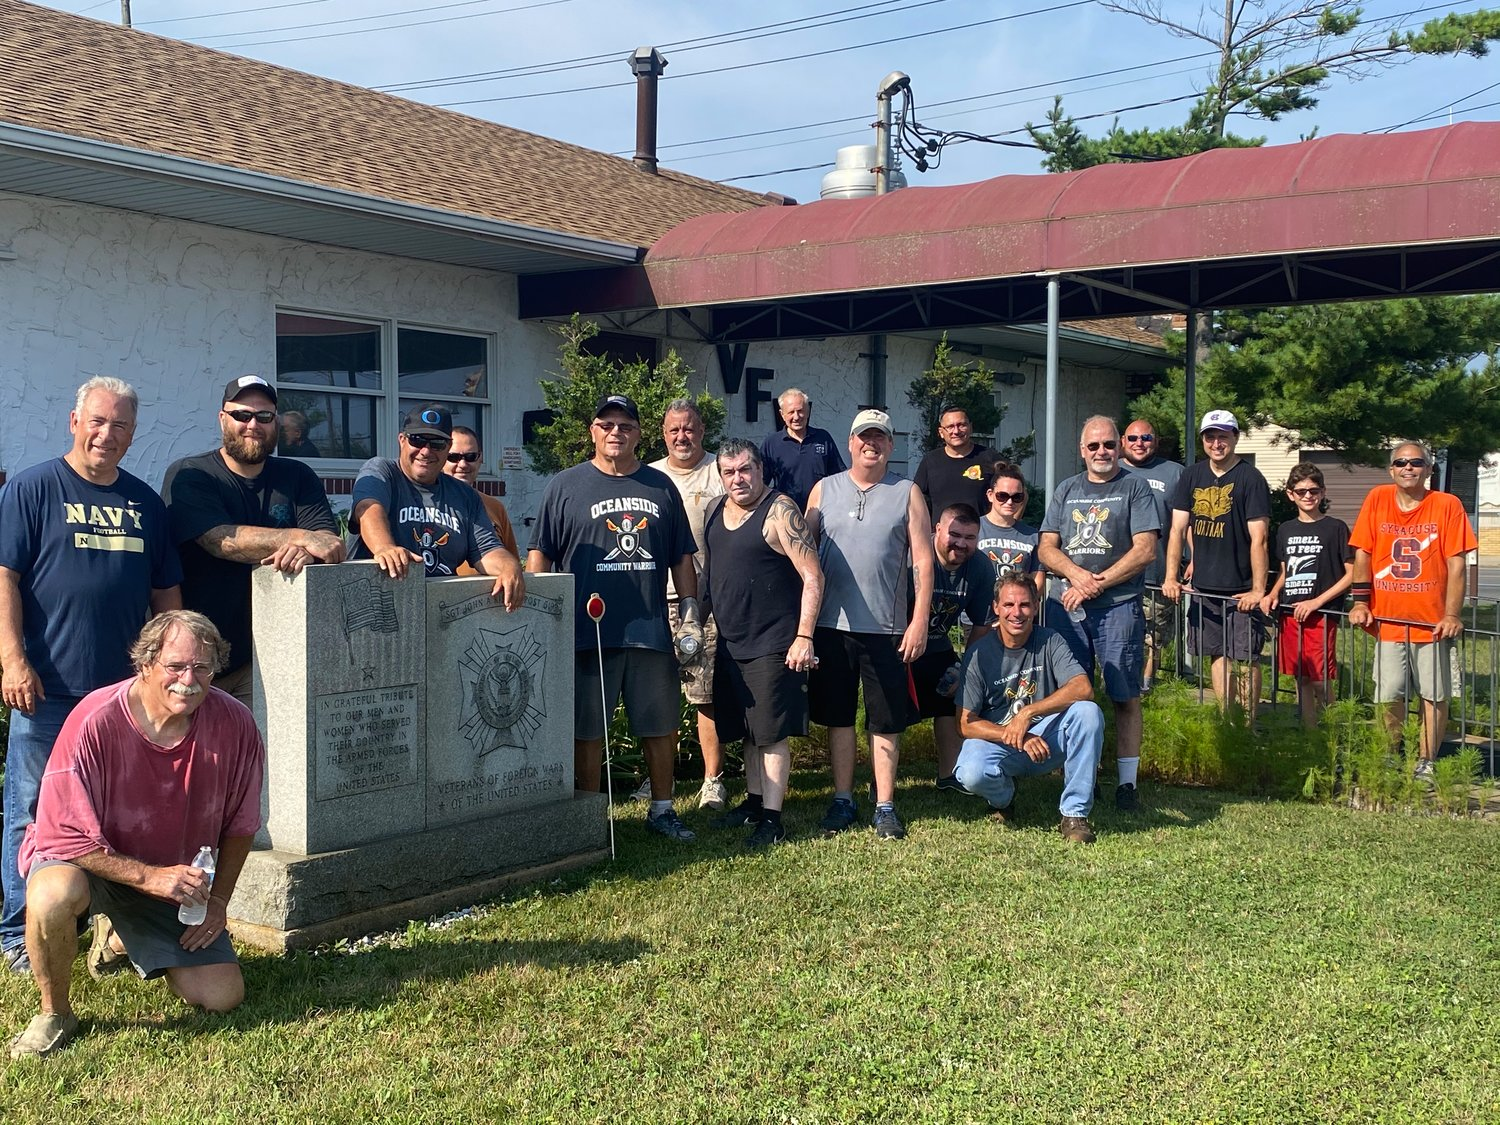 About 20 members of Oceanside Community Warriors helped clean and landscape at the Oceanside Veterans of Foreign Wars facility in late July.